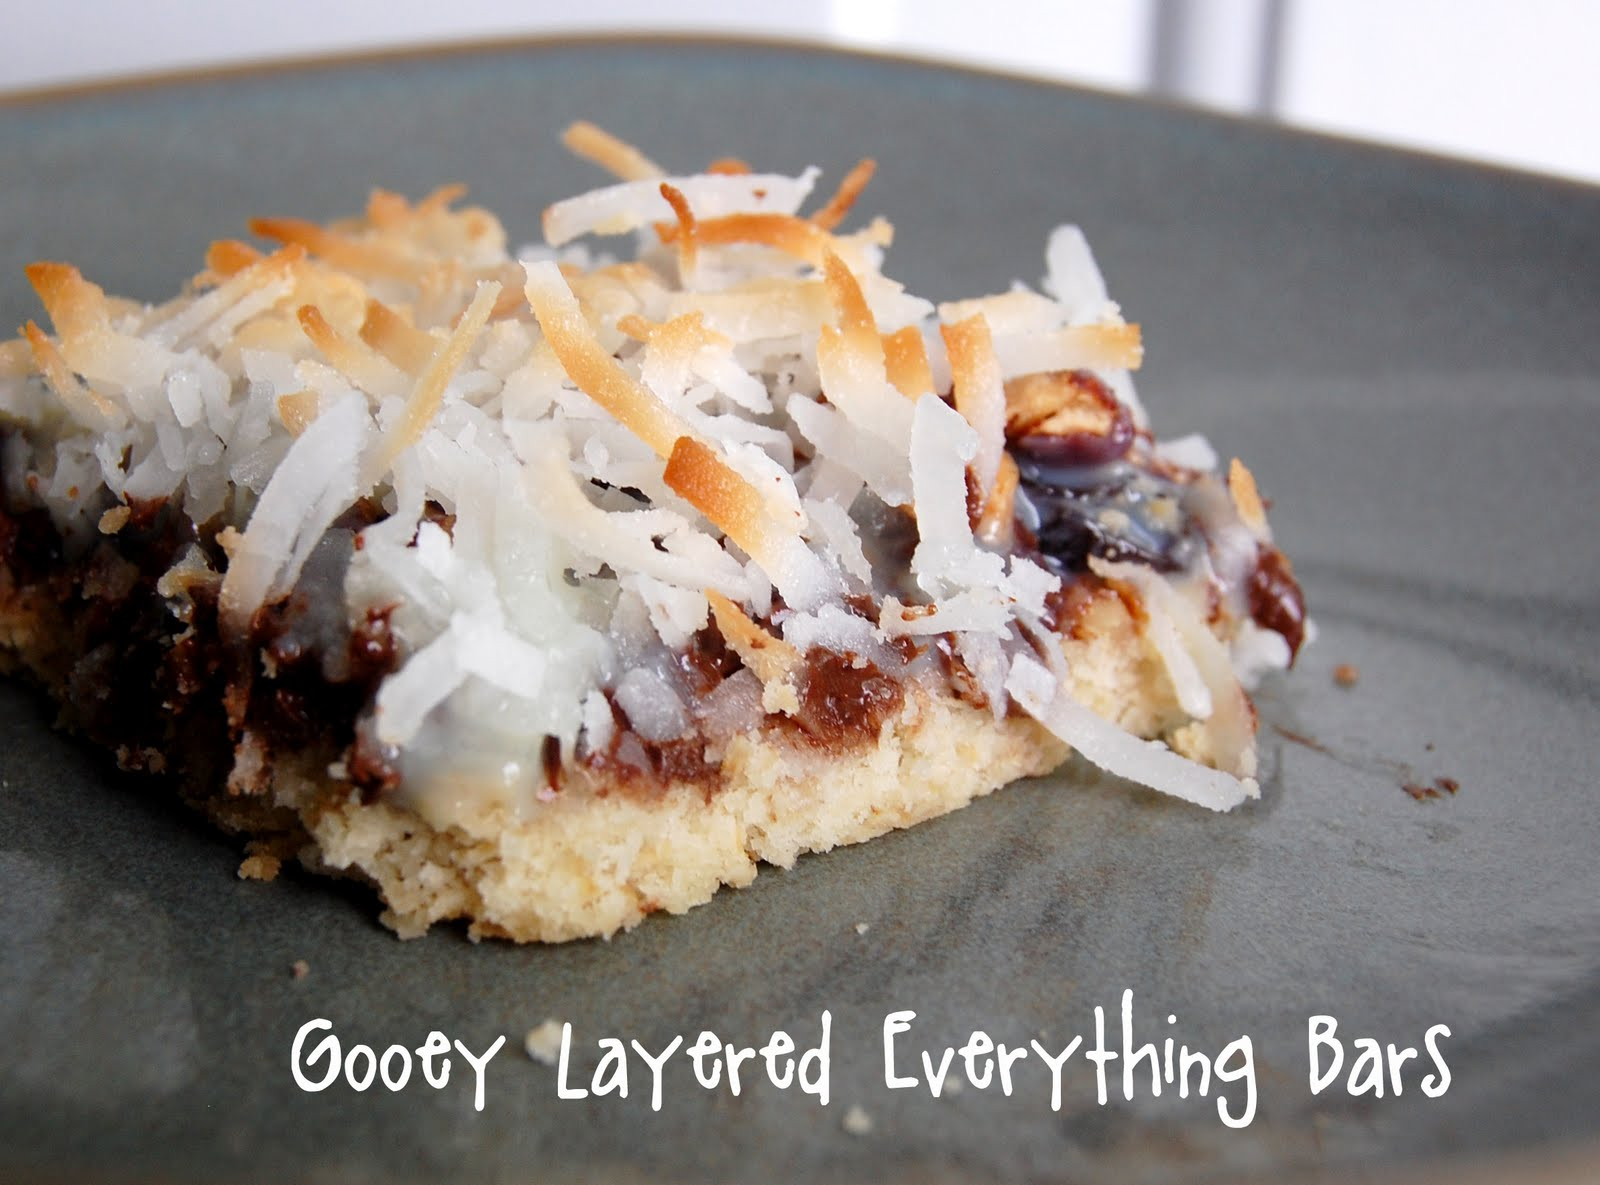 ... We Learned to Live, Love, and Cook: Gooey Layered Everything Bars